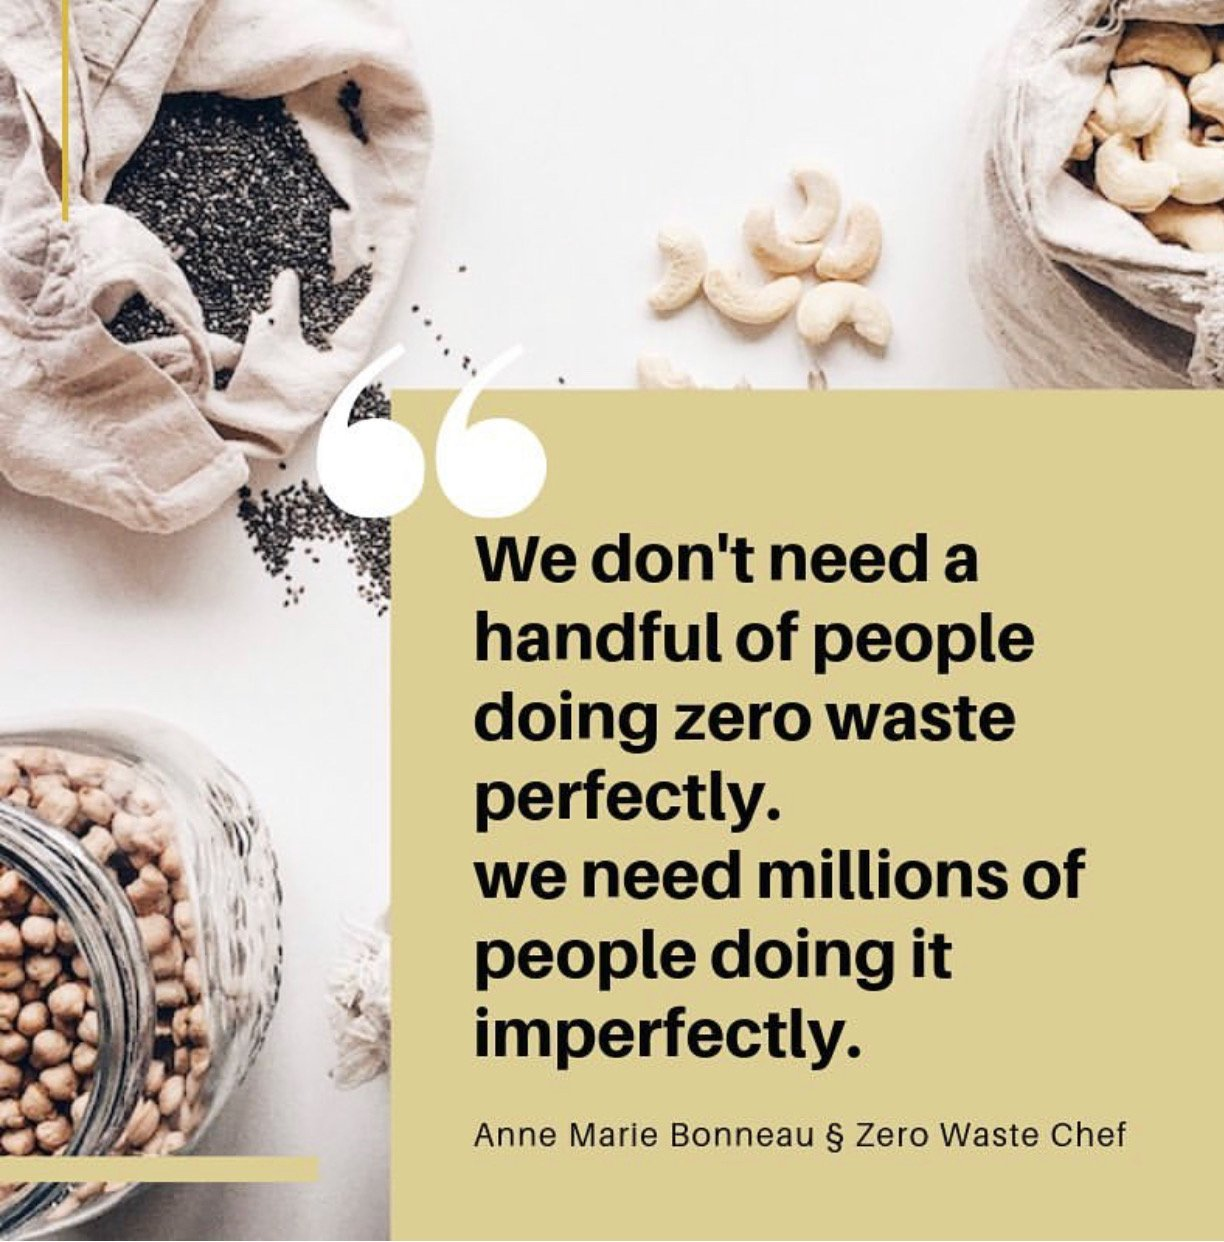 We don't need a handful of people doing zero waste perfectly. We need millions of people doing it imperfectly.